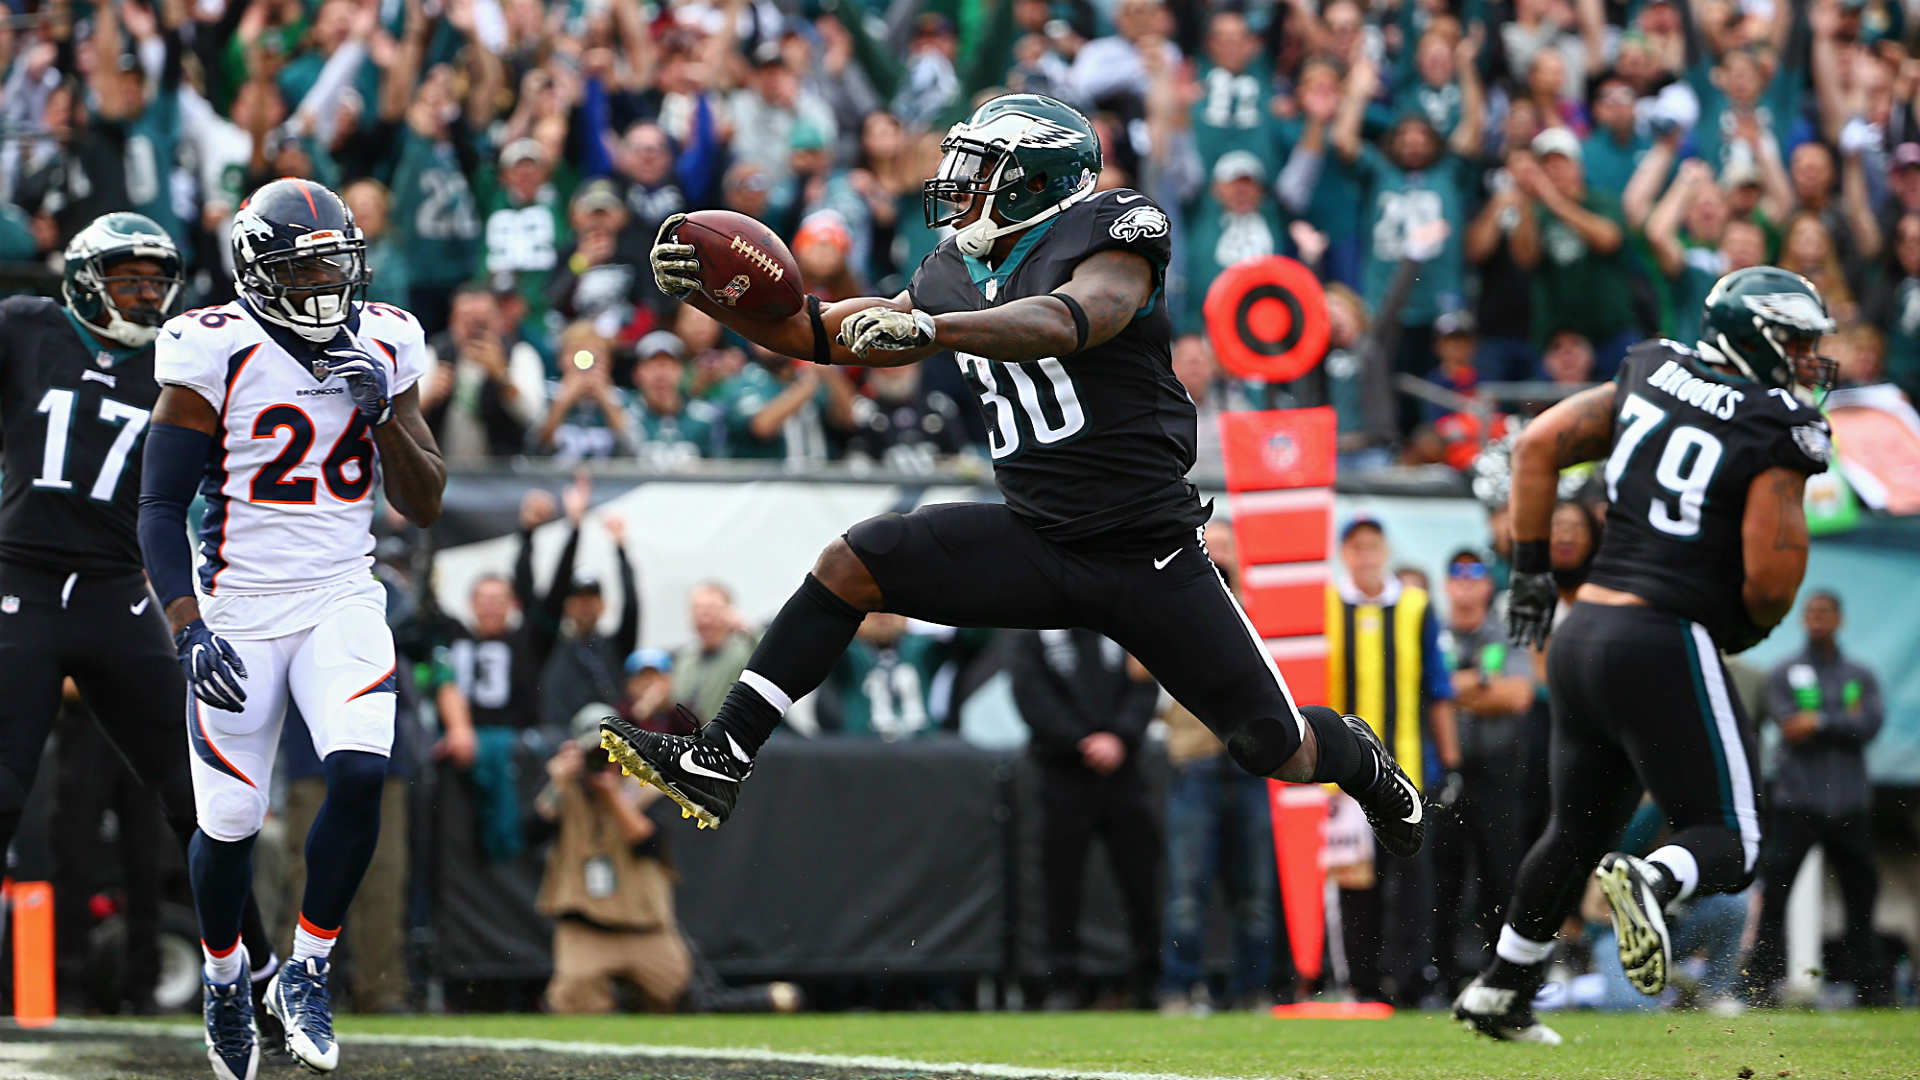 Three takeaways from Eagles' dominant win over Broncos